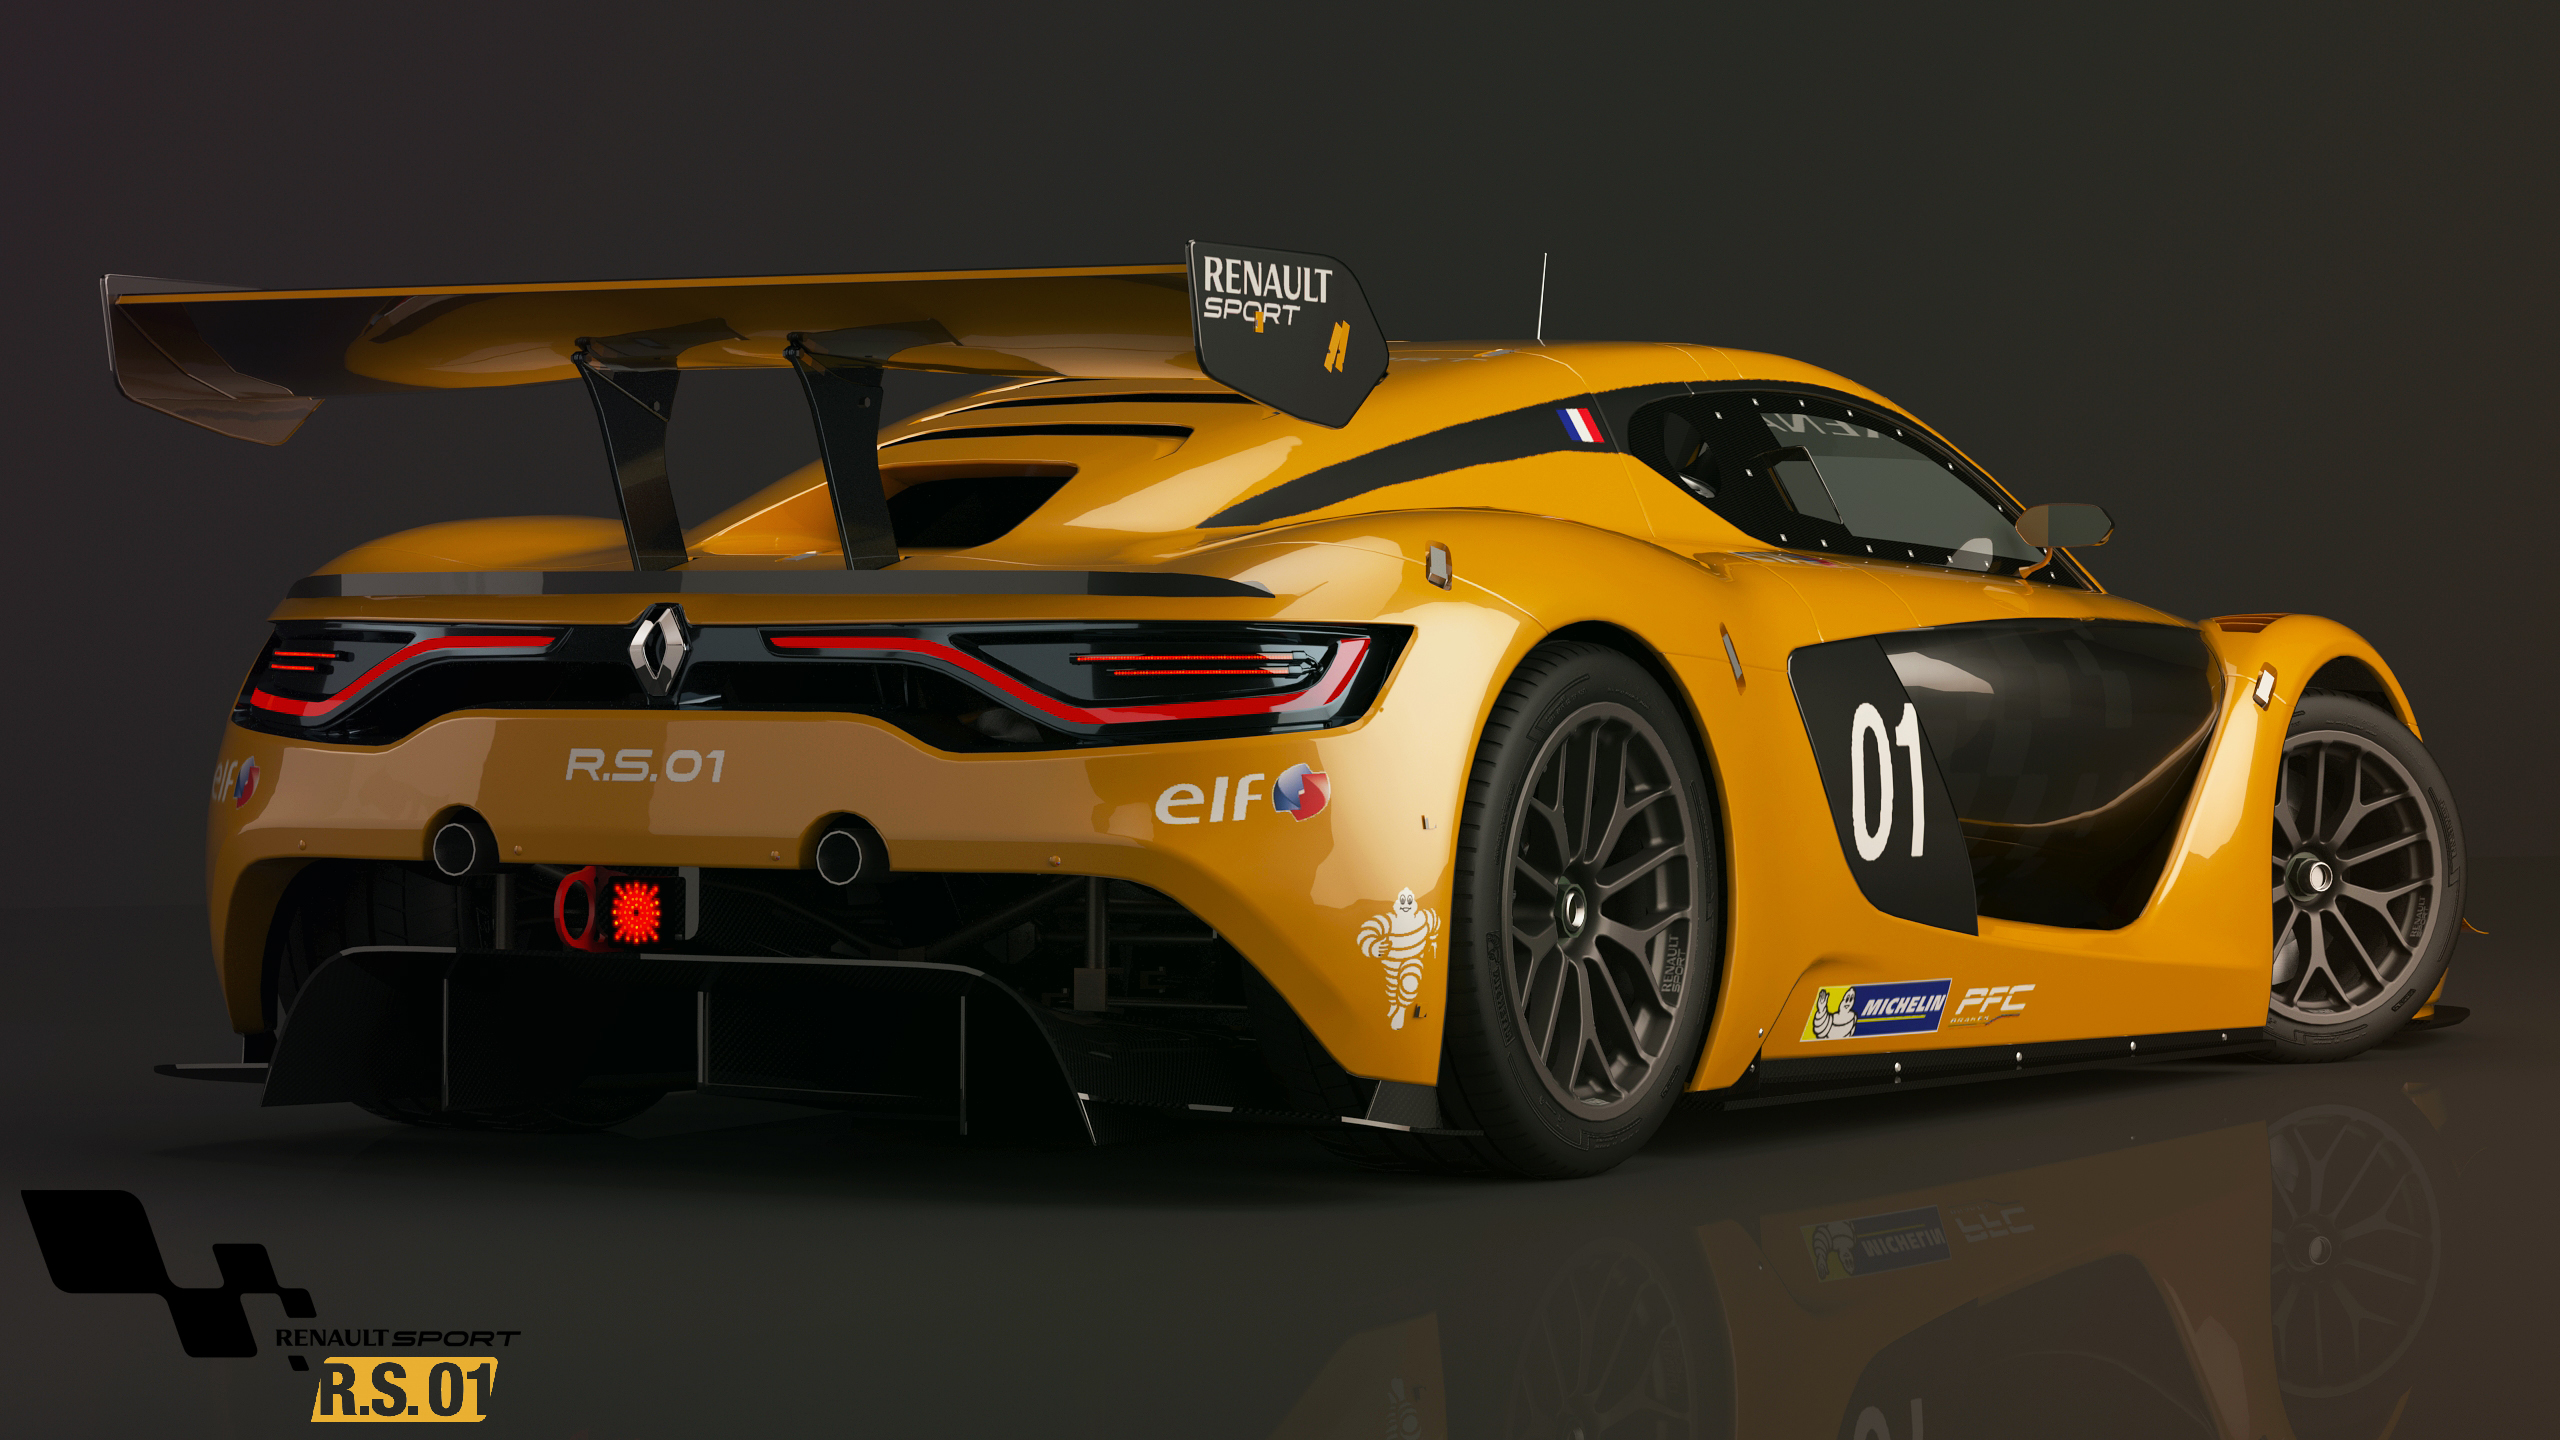 2018 renault sport rs 01 car photos catalog 2018